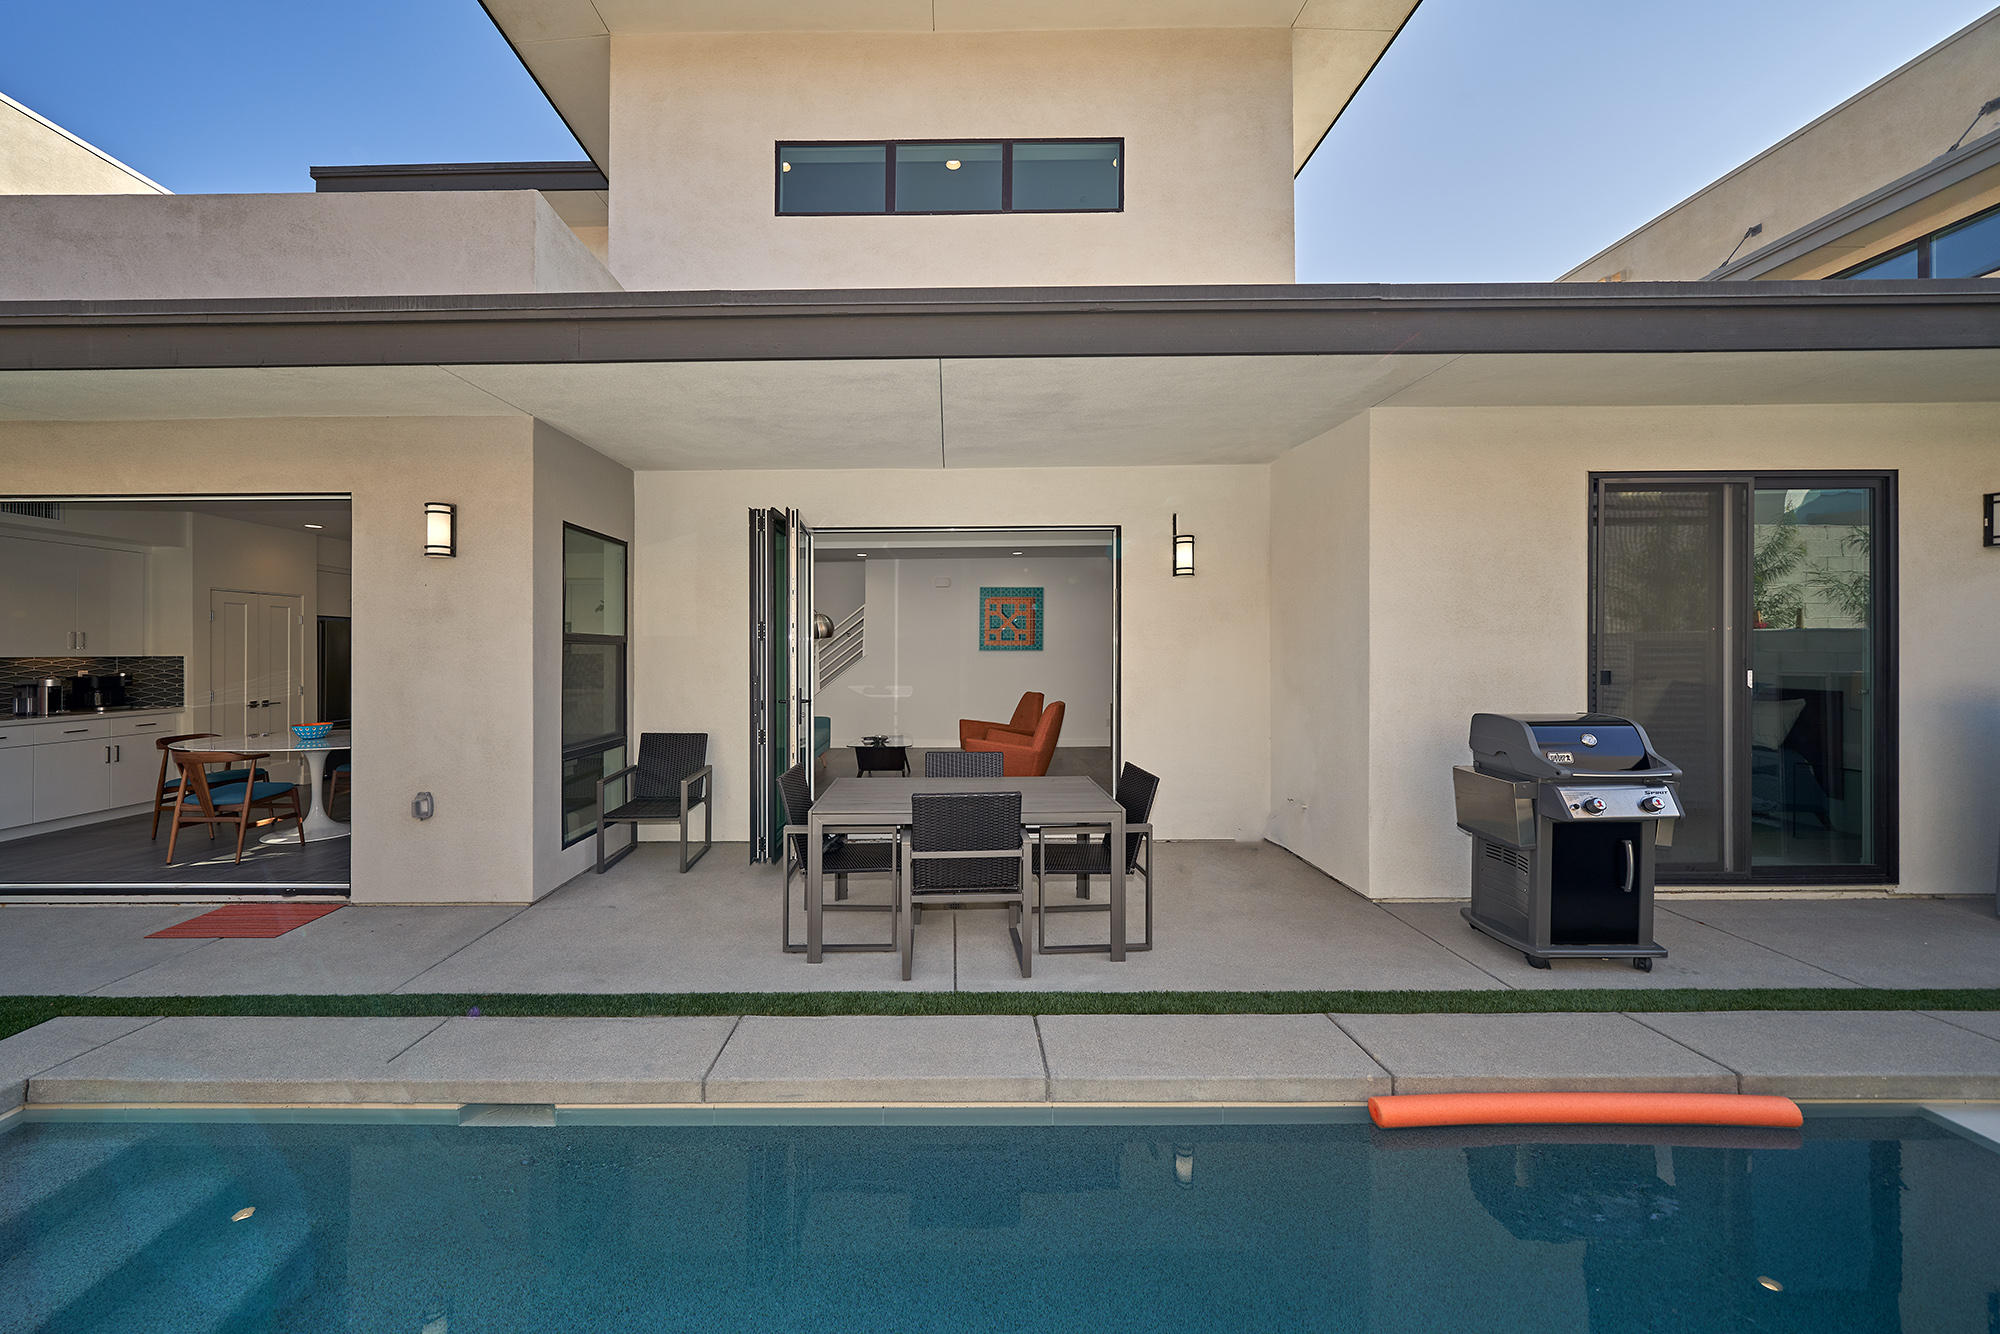 This beautiful 2019 Vibe townhome is the stand alone plan with no adjoining walls!  This sophisticated and barely lived in home has 2 primary suites, a home office and a separate media room/den! One primary suite is on the first floor while the other 2nd primary suite is upstairs.  The backyard has its own pool and spa and dining and lounging area.  This pool is also larger than many of the others in the development. The home is loaded with upgrades including solar! The private attached two car garage includes a charger for an electric car.  Perfectly situated in central Palm Springs in close proximity to shopping, restaurants and entertainment!